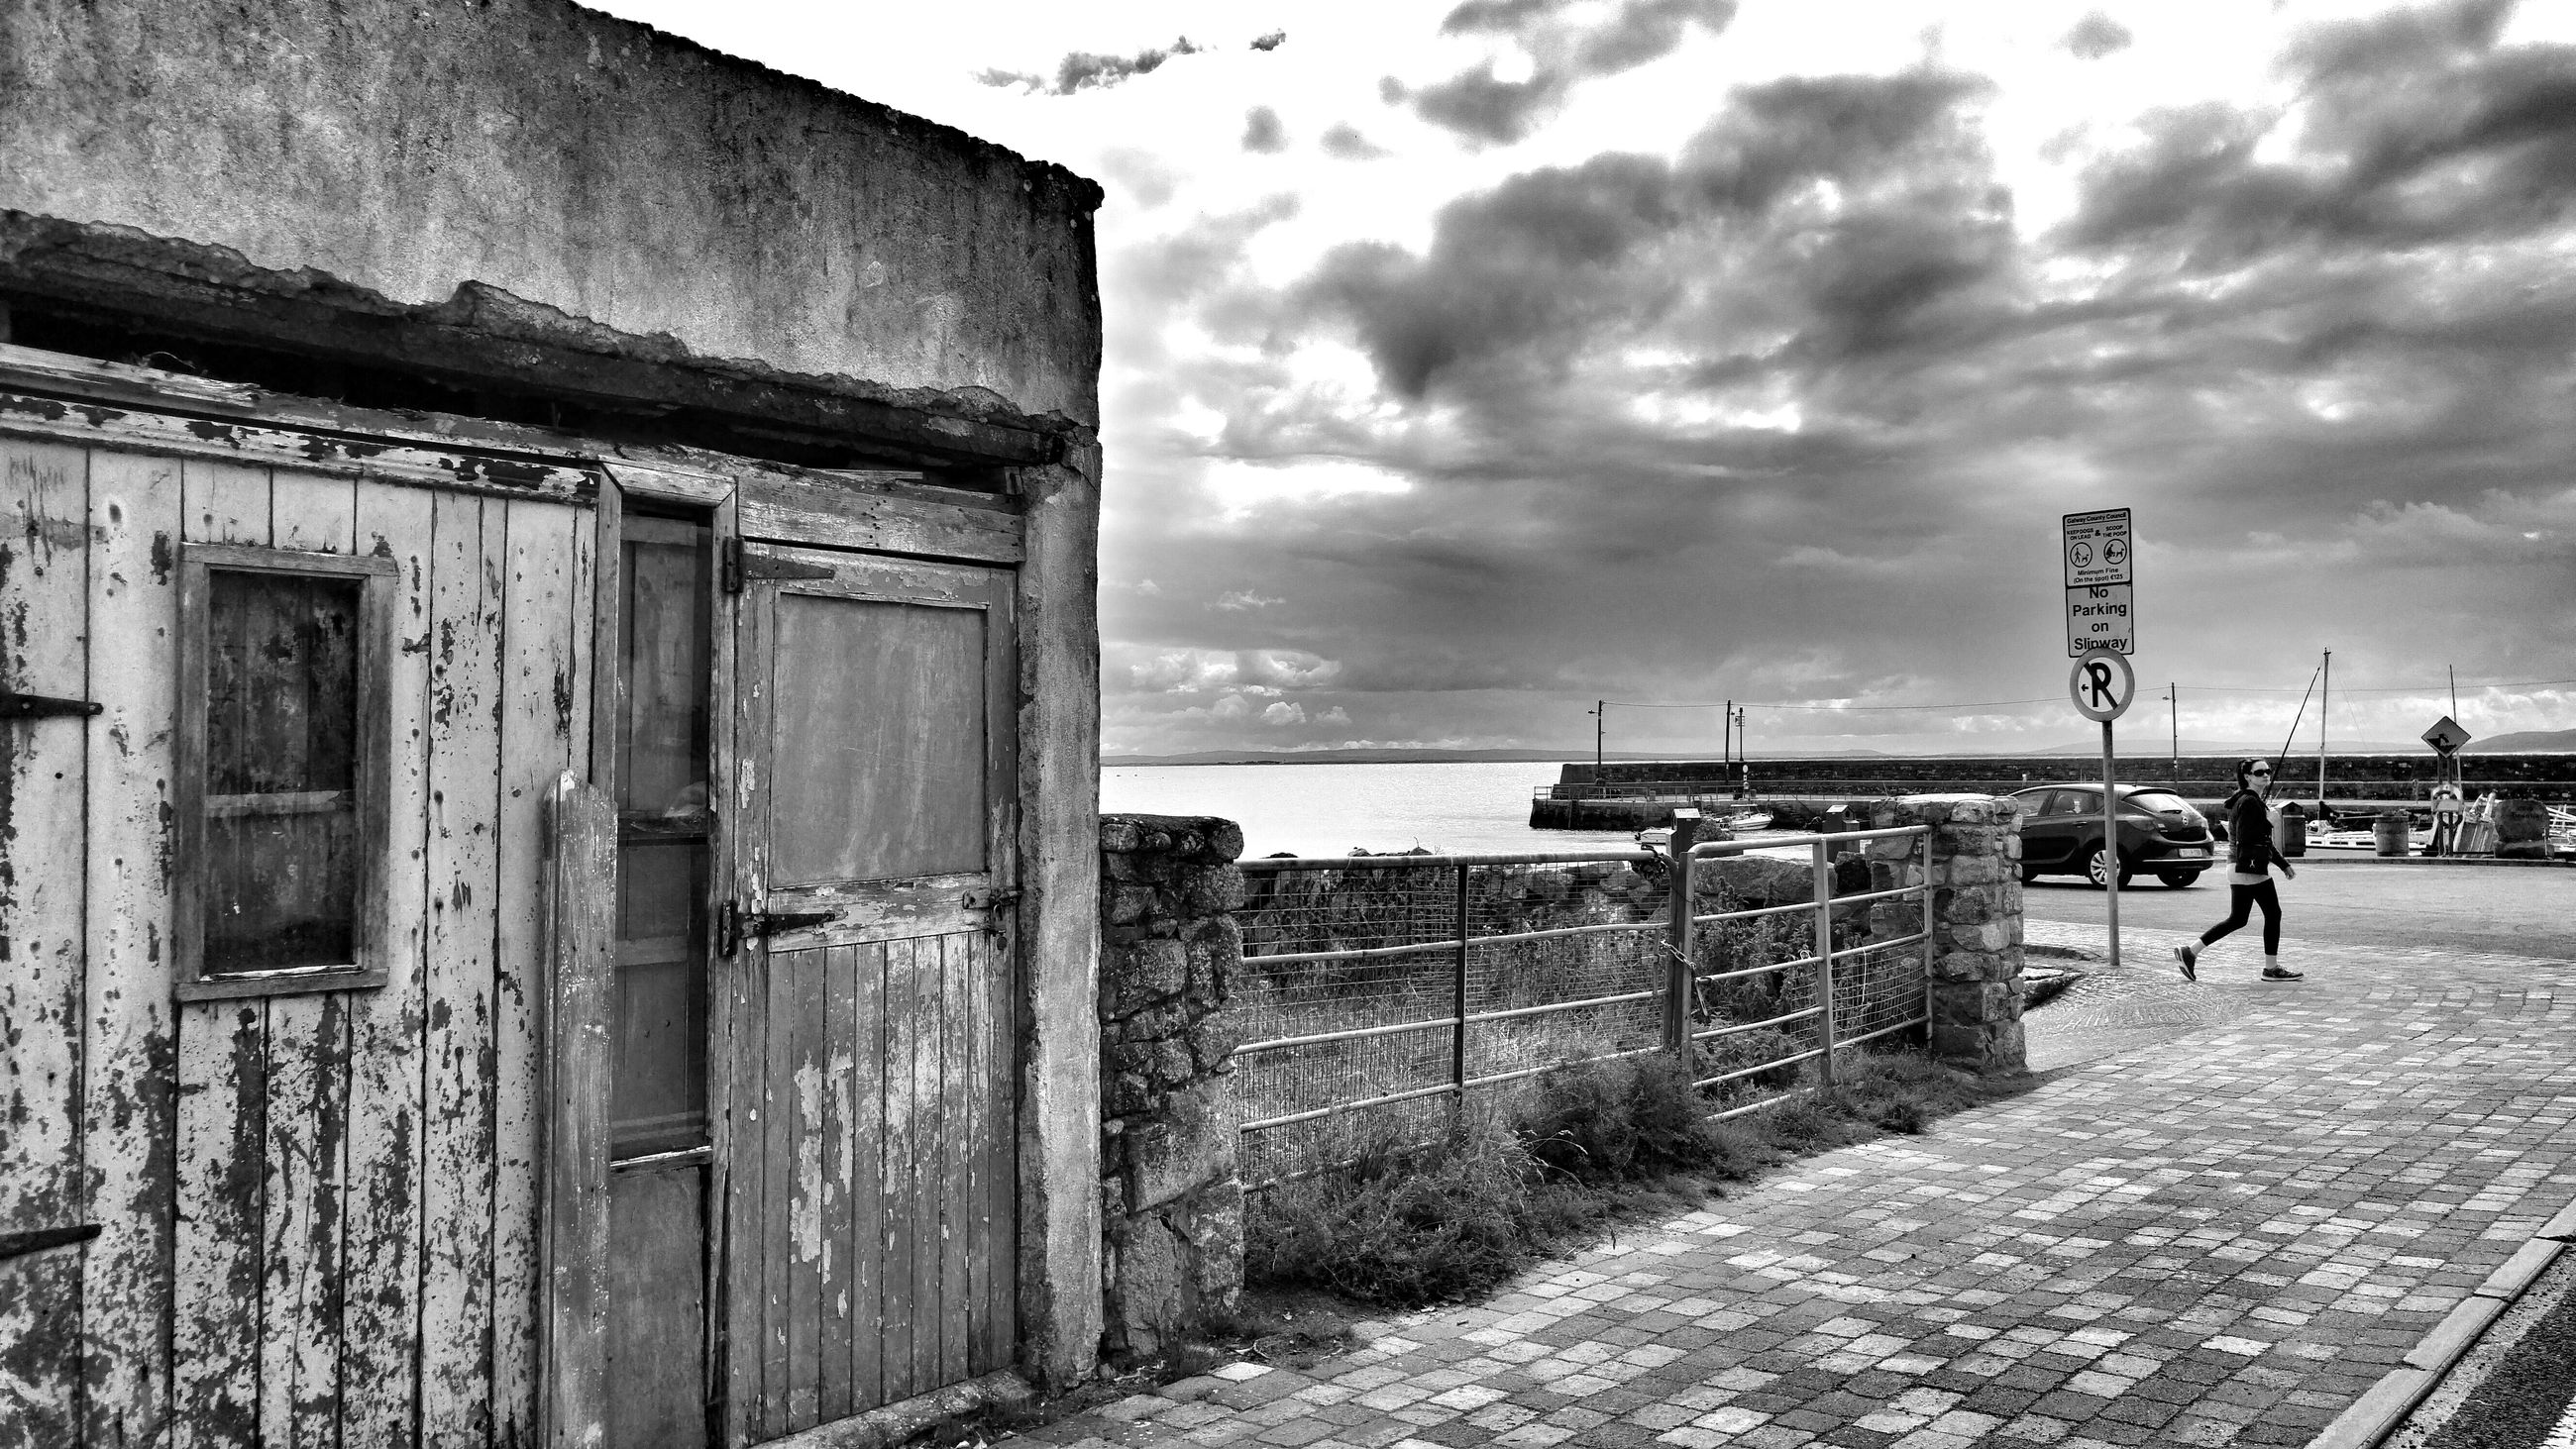 sky, built structure, architecture, cloud - sky, building exterior, cloudy, sea, abandoned, cloud, horizon over water, beach, old, day, outdoors, damaged, wood - material, weathered, obsolete, no people, water